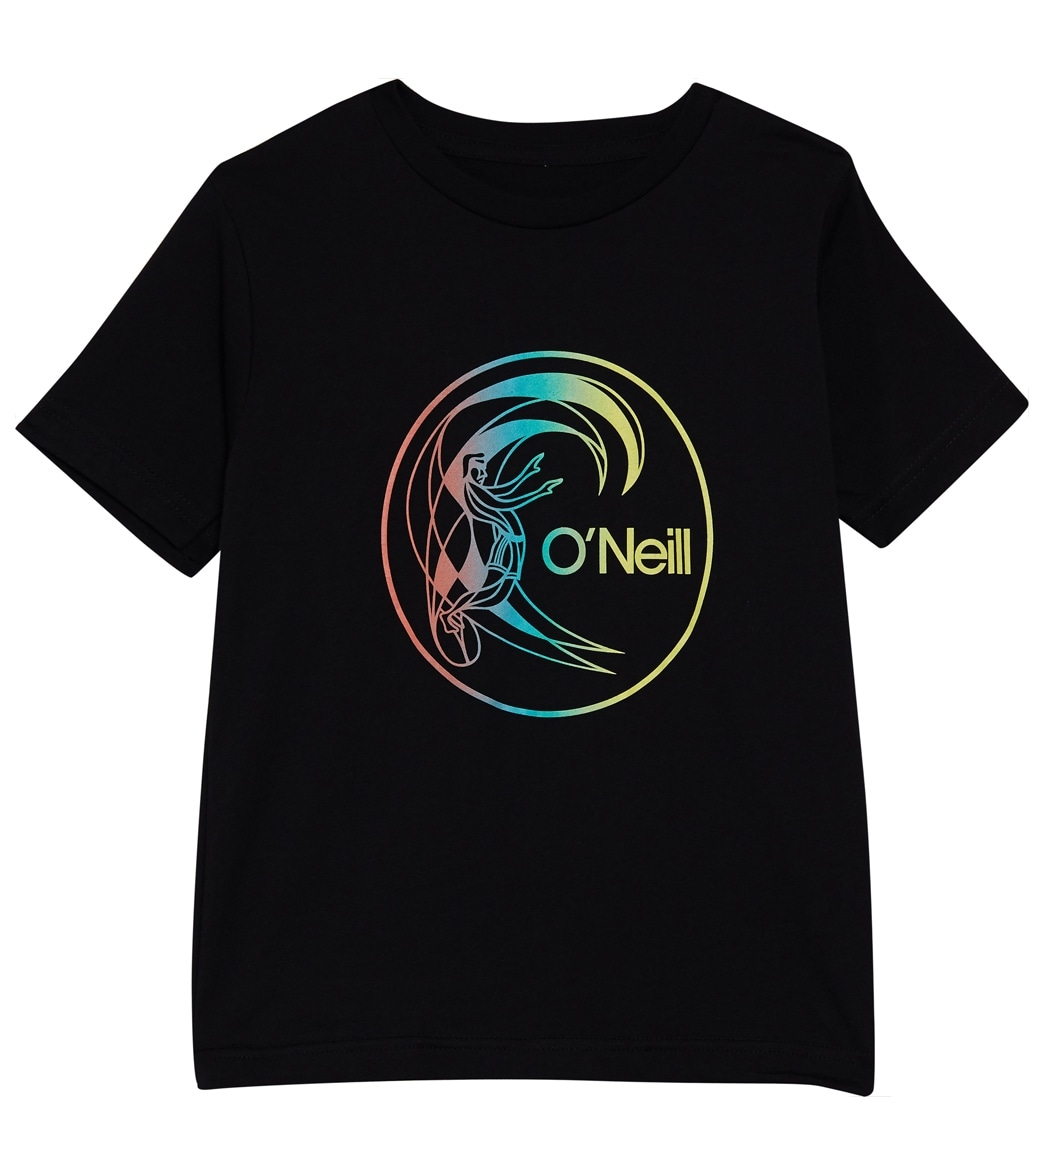 1a46b54b0 O'Neill Boys' Rainbow T-Shirt (Big Kid) at SwimOutlet.com